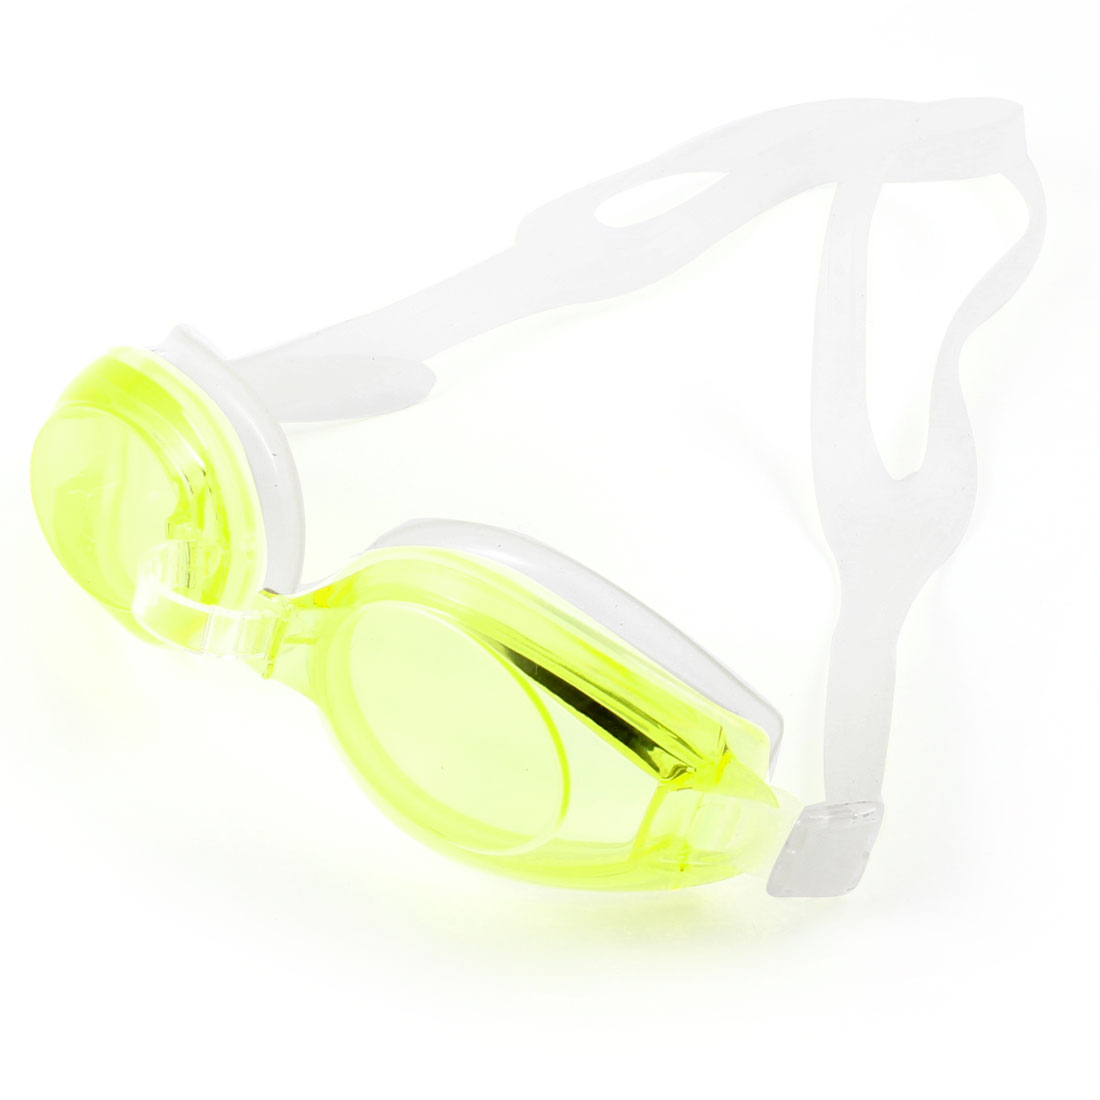 Stretchy Rubber Strap Anti-fog Underwater Glasses Swim Goggles w Earplugs For Children by